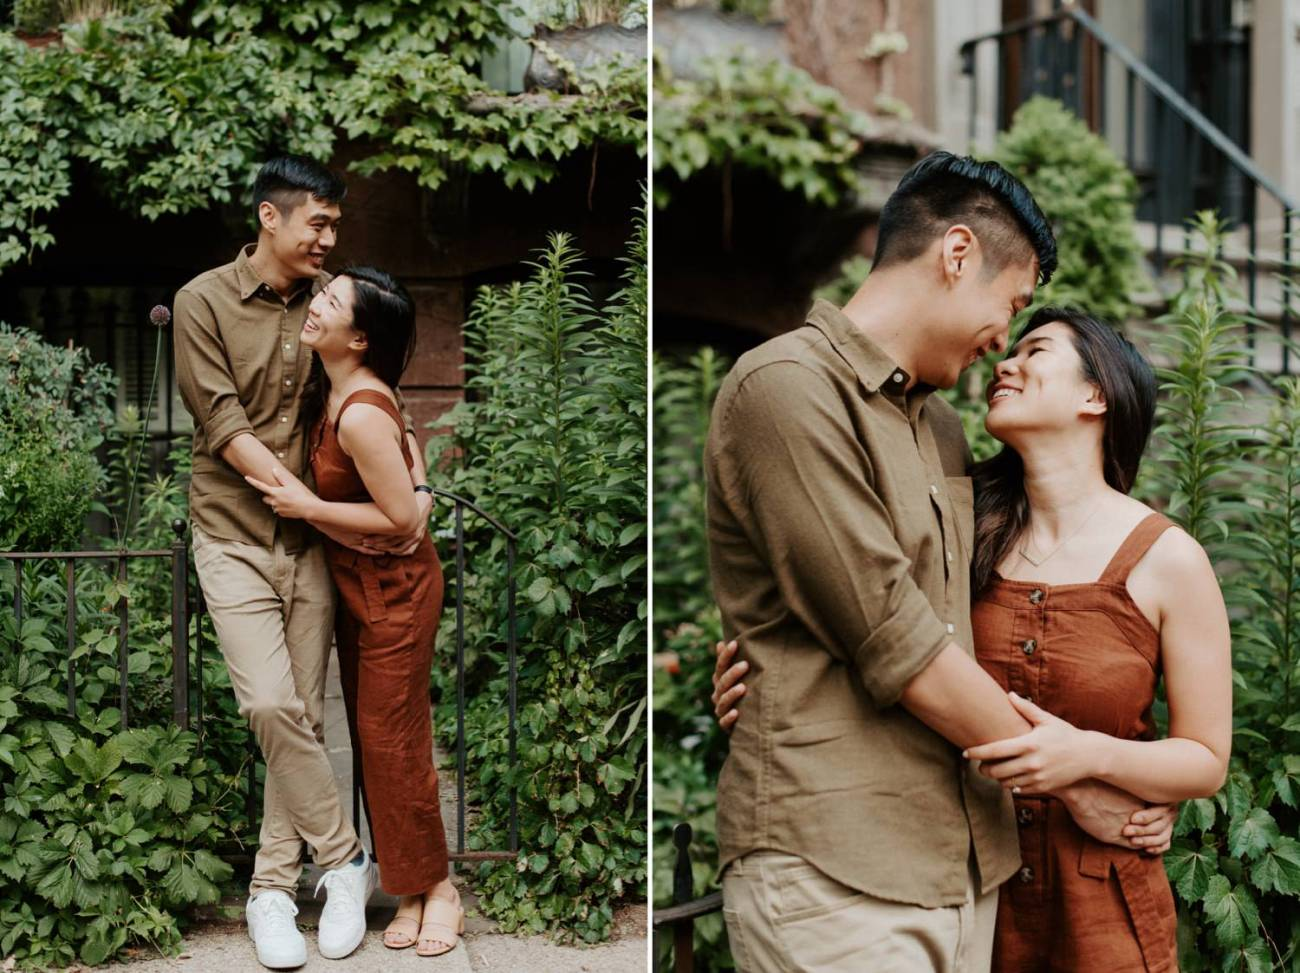 Fort Greene Brooklyn Engagement Session Brooklyn Wedding Photographer New York Wedding Photographer Anais Possamai Photography 012